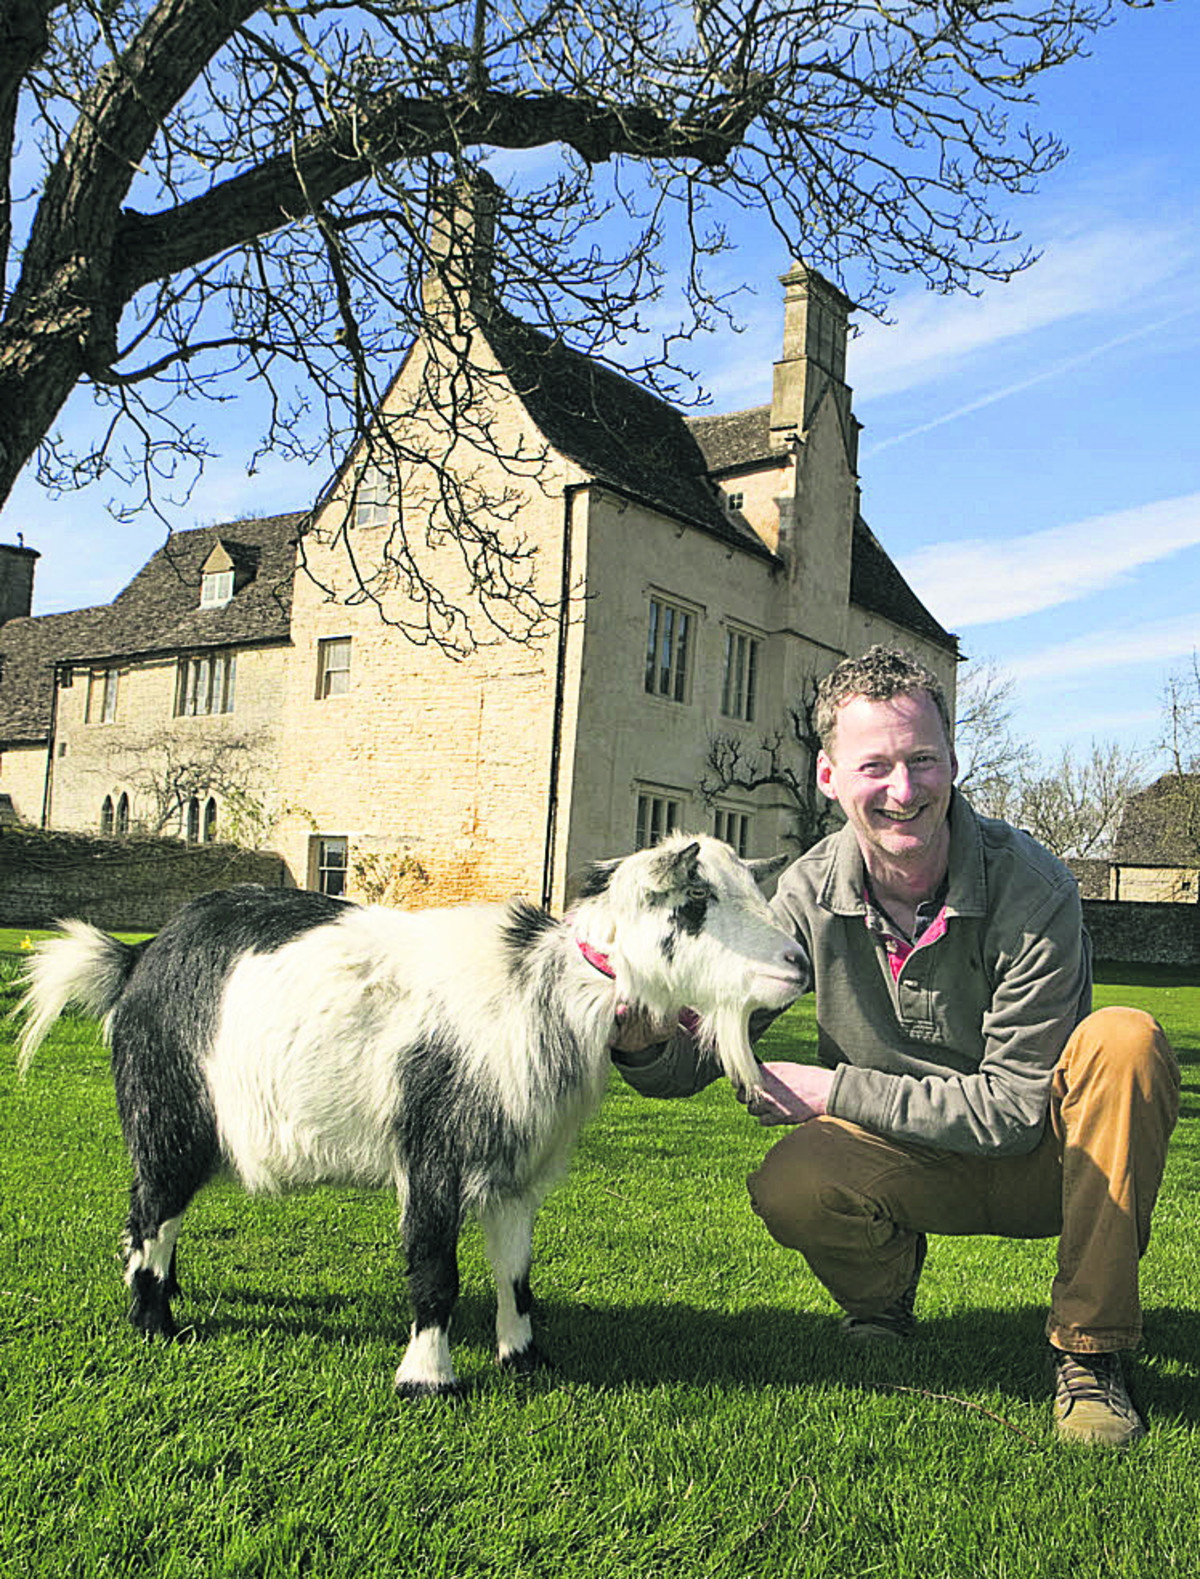 Cogges Manor Farm Museum director Colin Shone and Jonathan the goat ready to welcome visitors